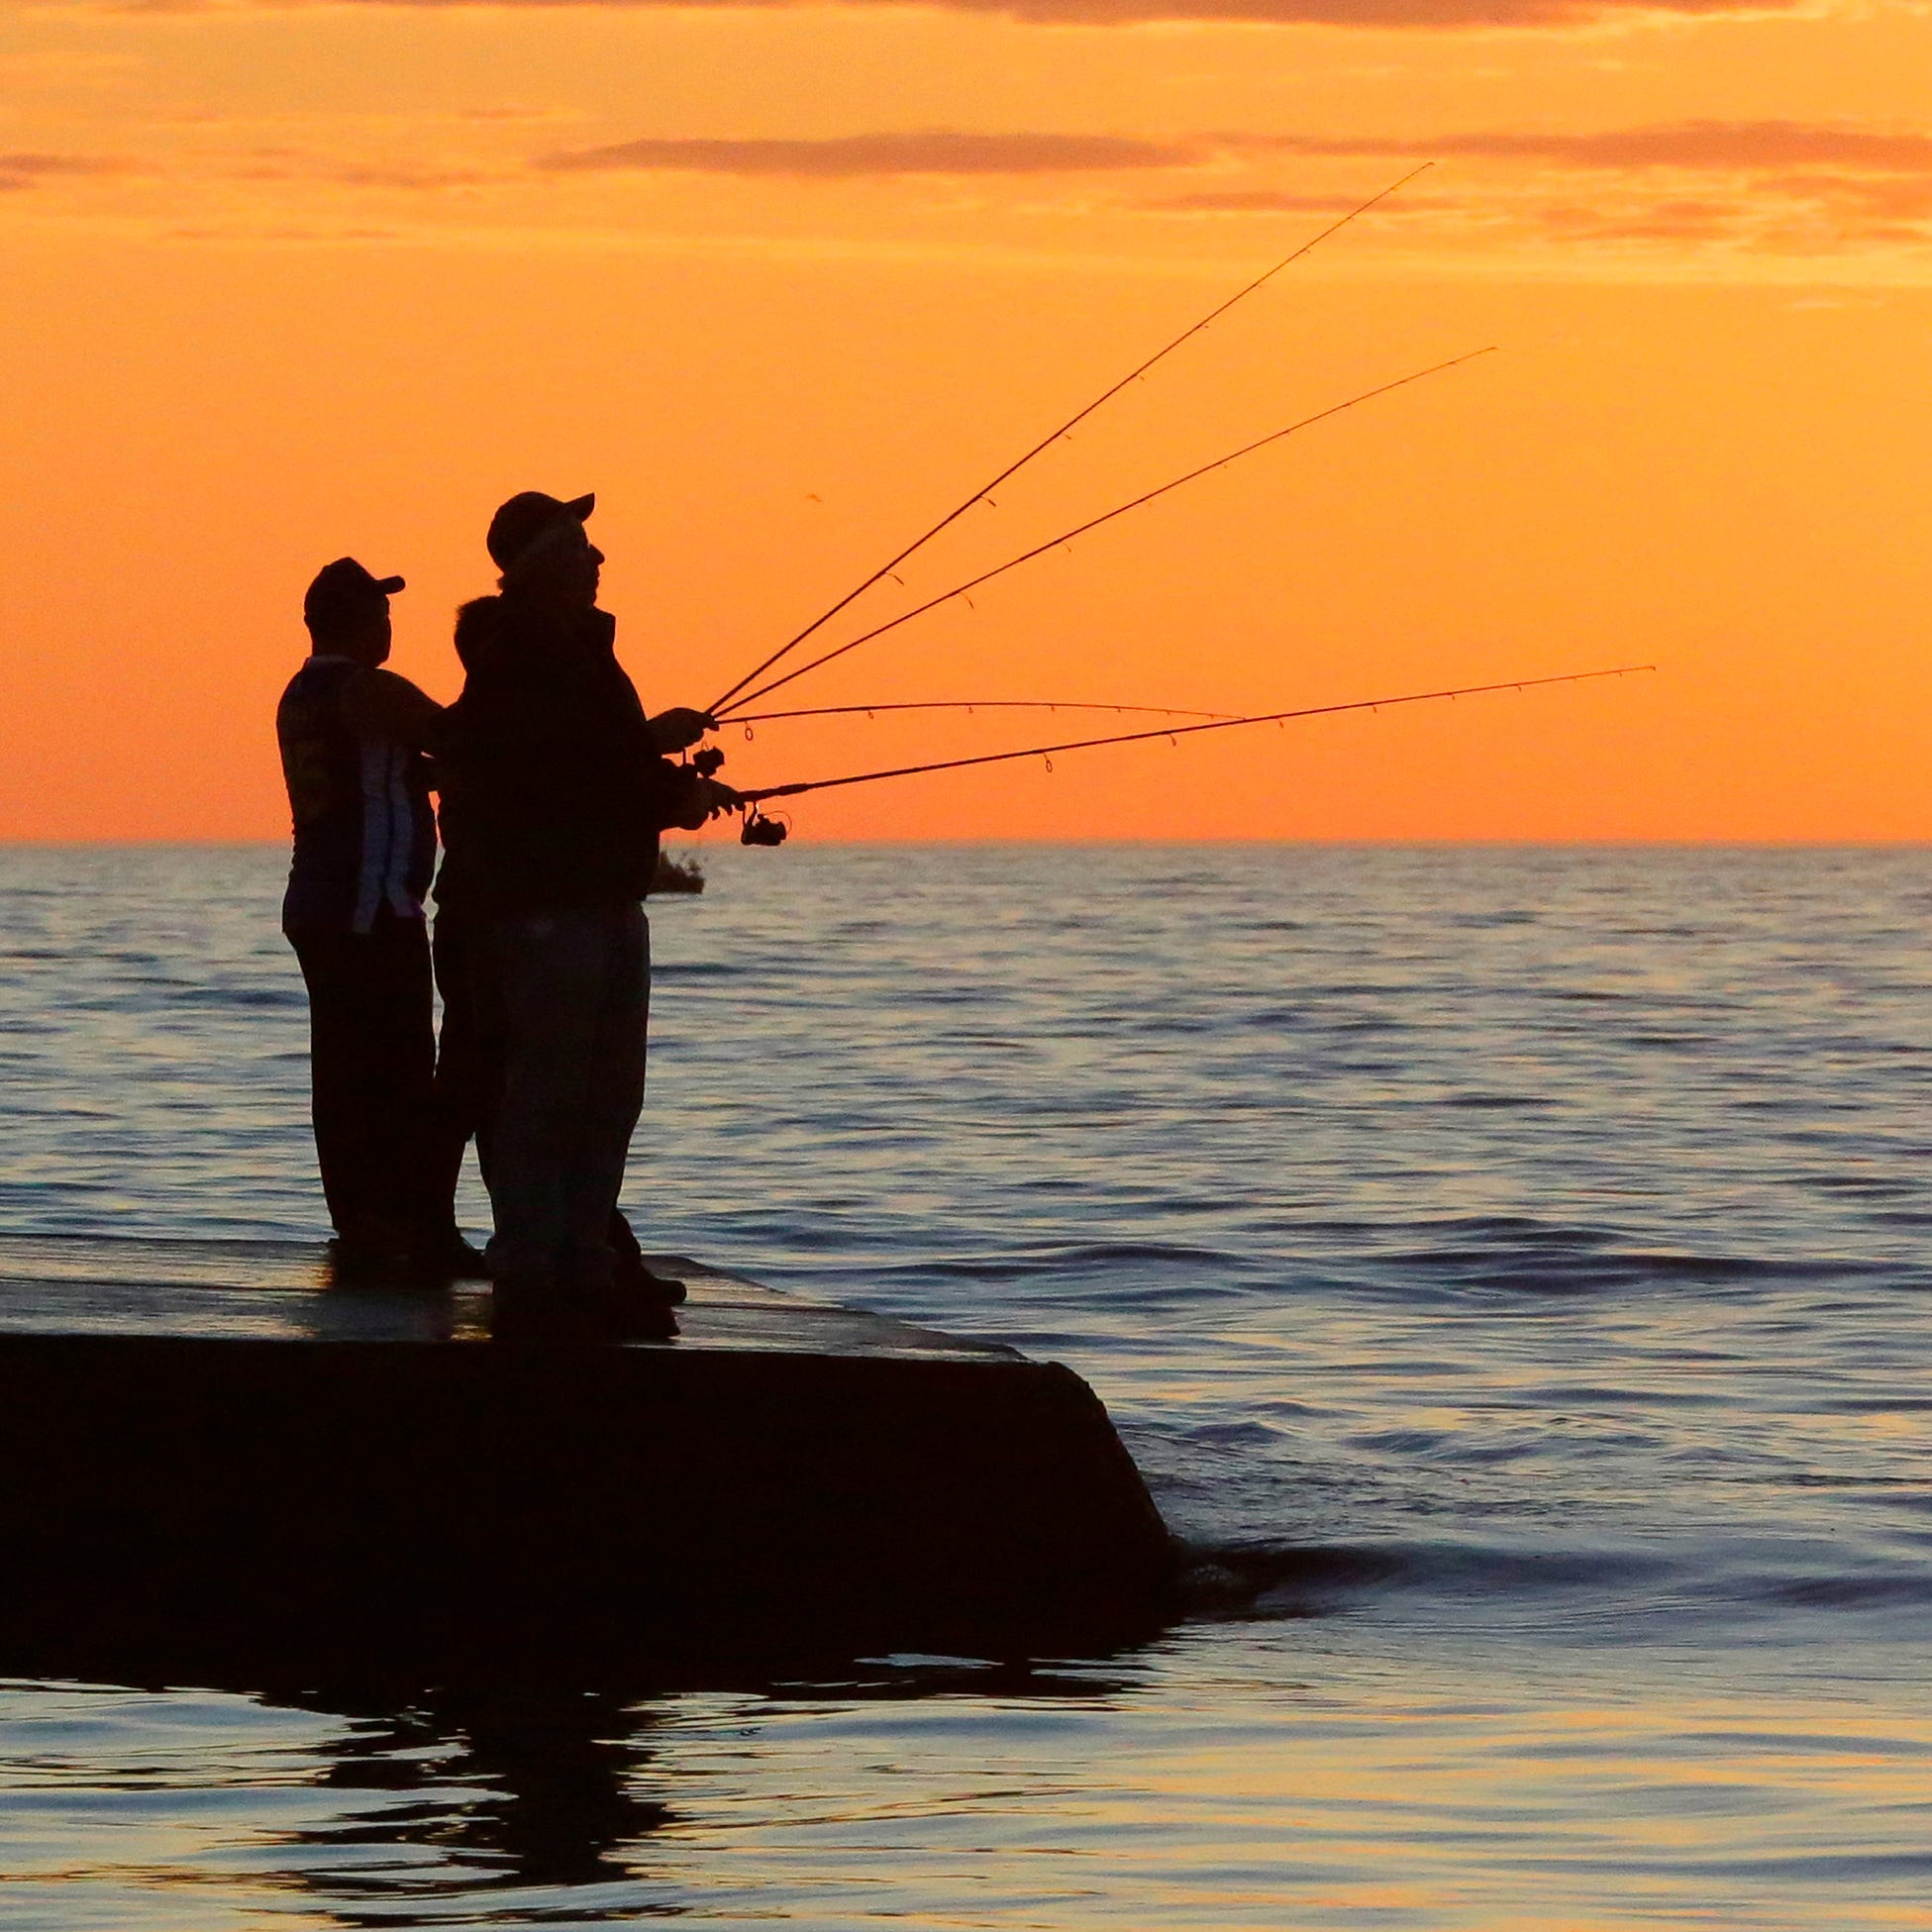 Ready to go fishing? Here's what you need to know to get your license